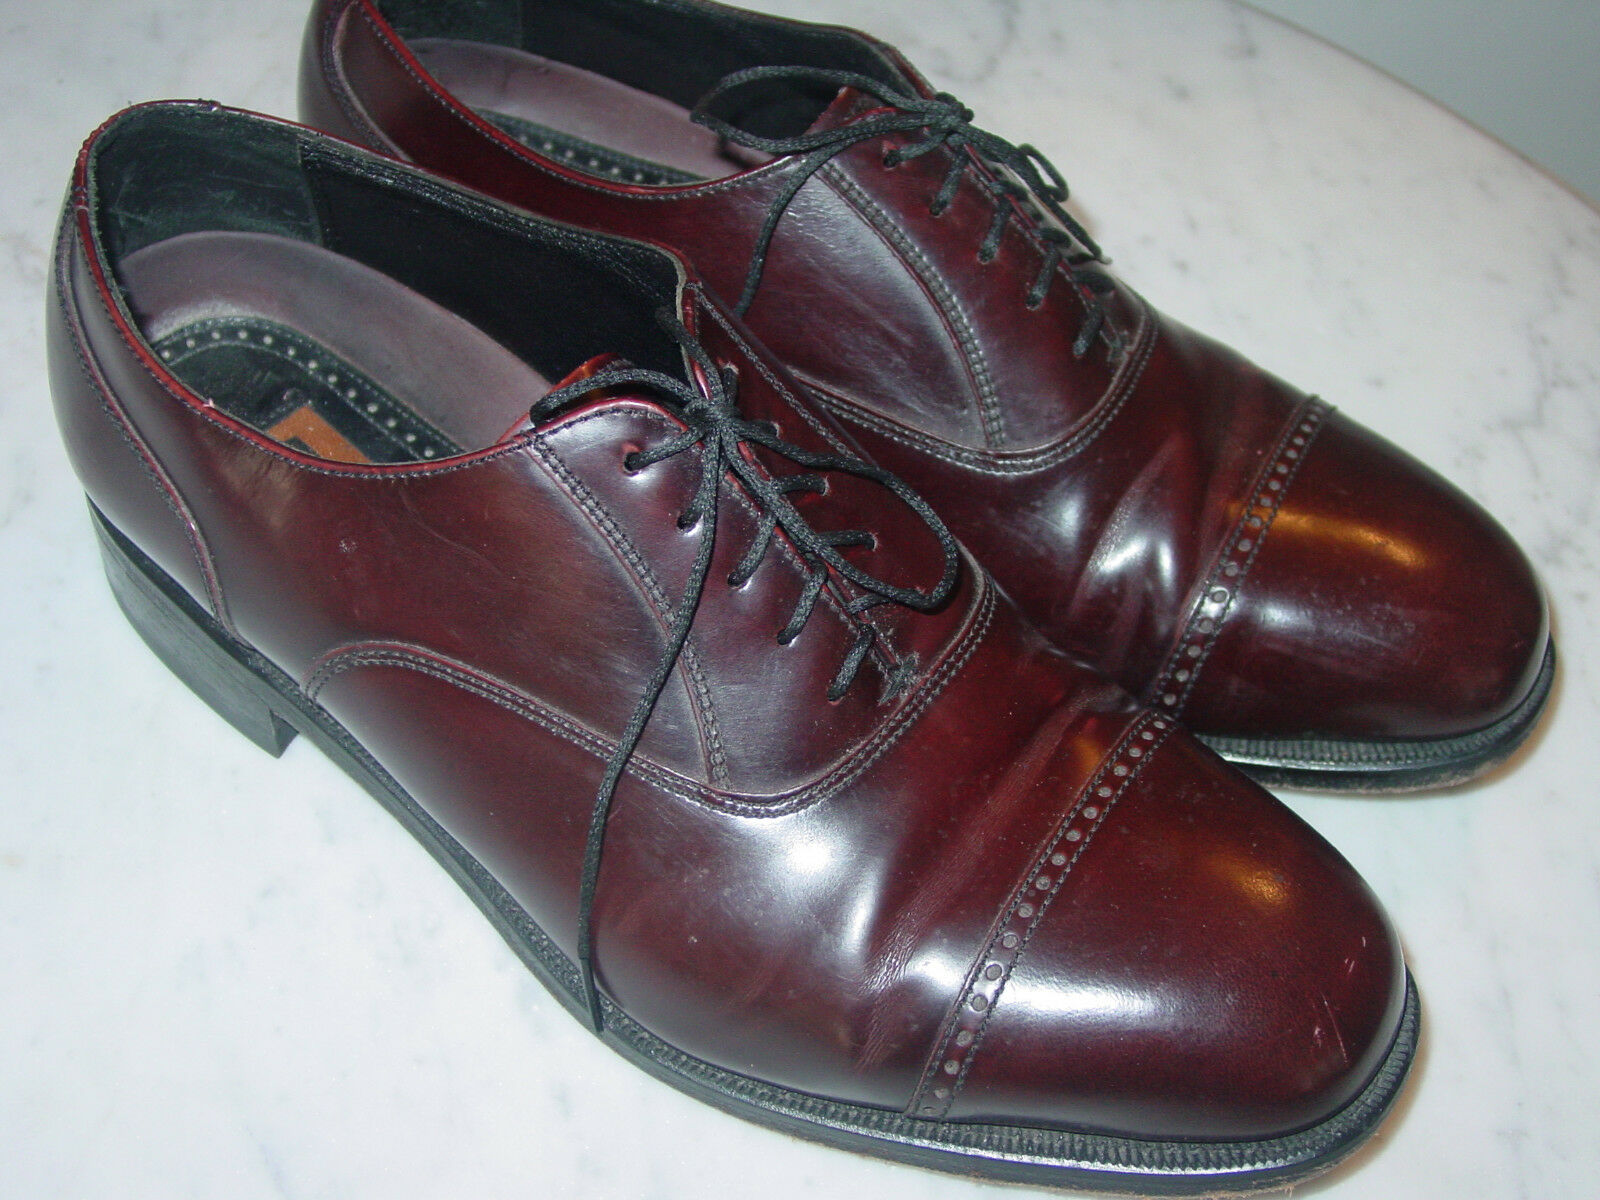 Florsheim LEXINGTON Uomo Burgundy Pelle 17067-05 Cap Toe Oxford Shoes! Size 9D